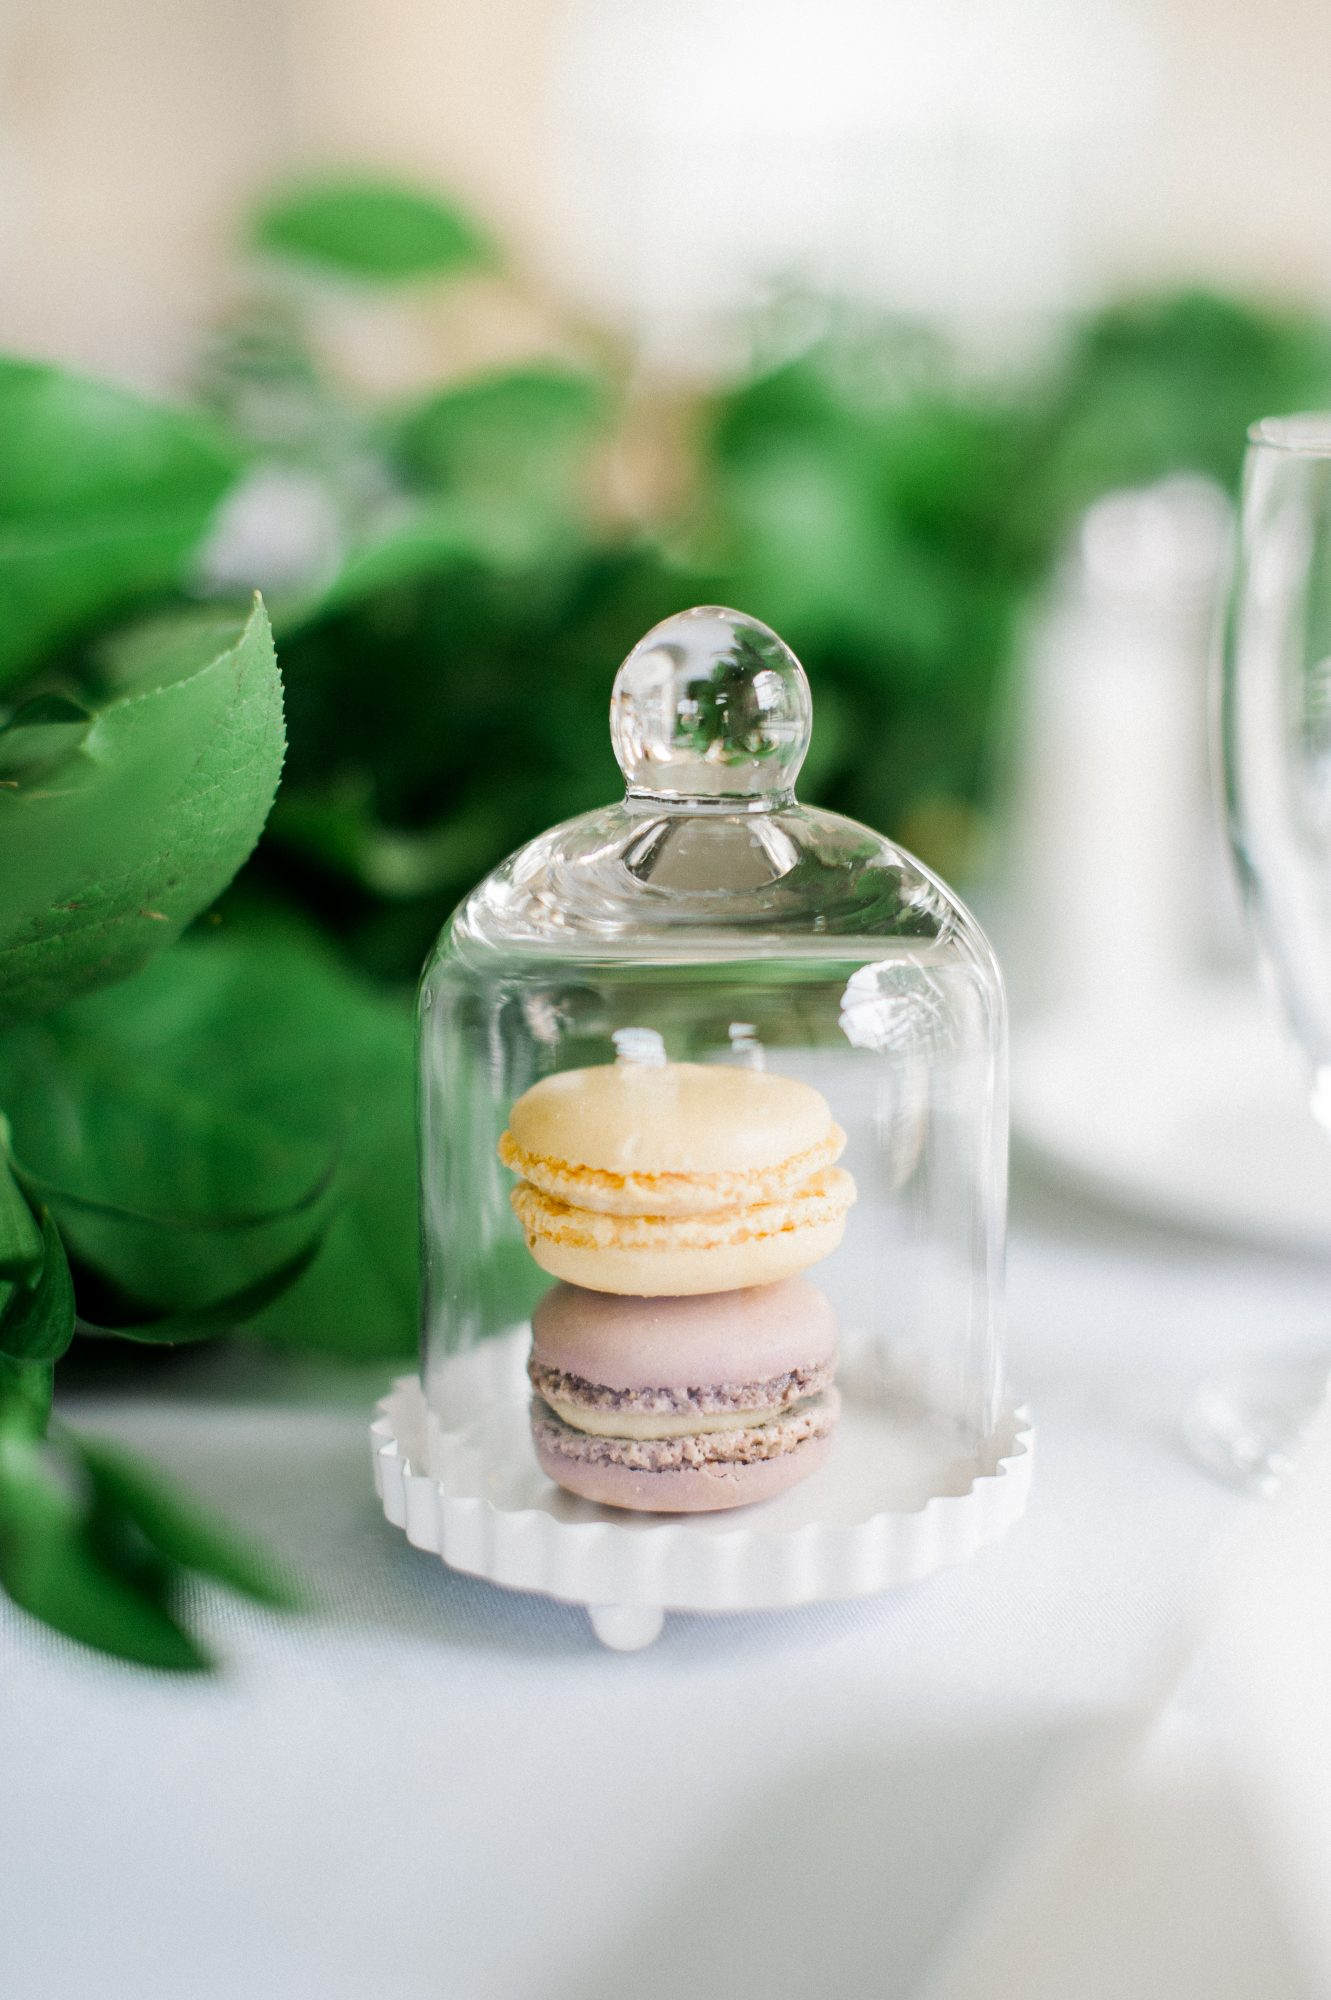 Wedding favors can double as table décor, like these macarons in see-through containers did.